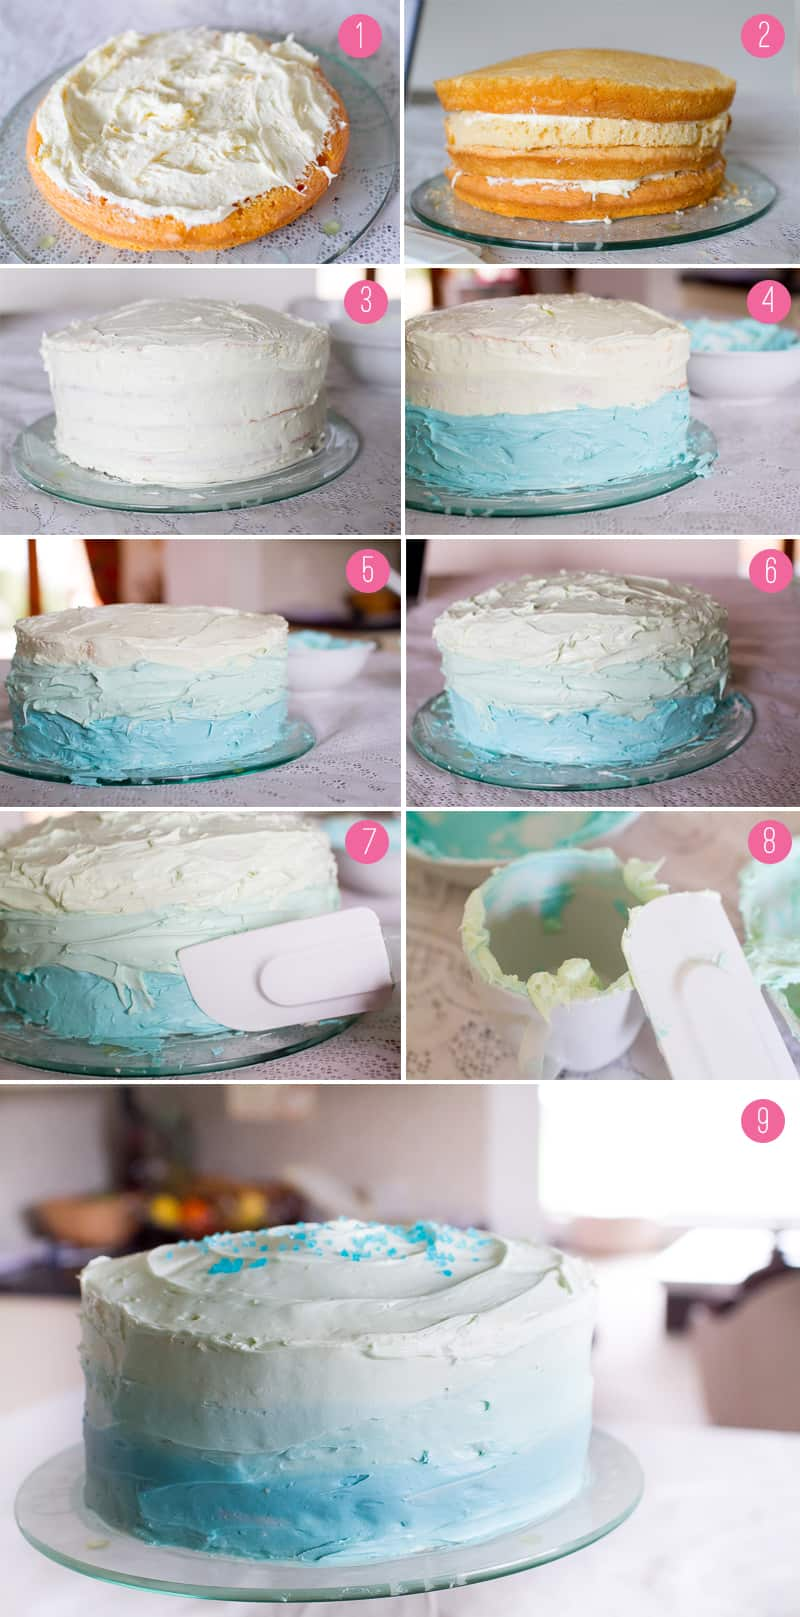 Tips For Making Ice Cream Cake